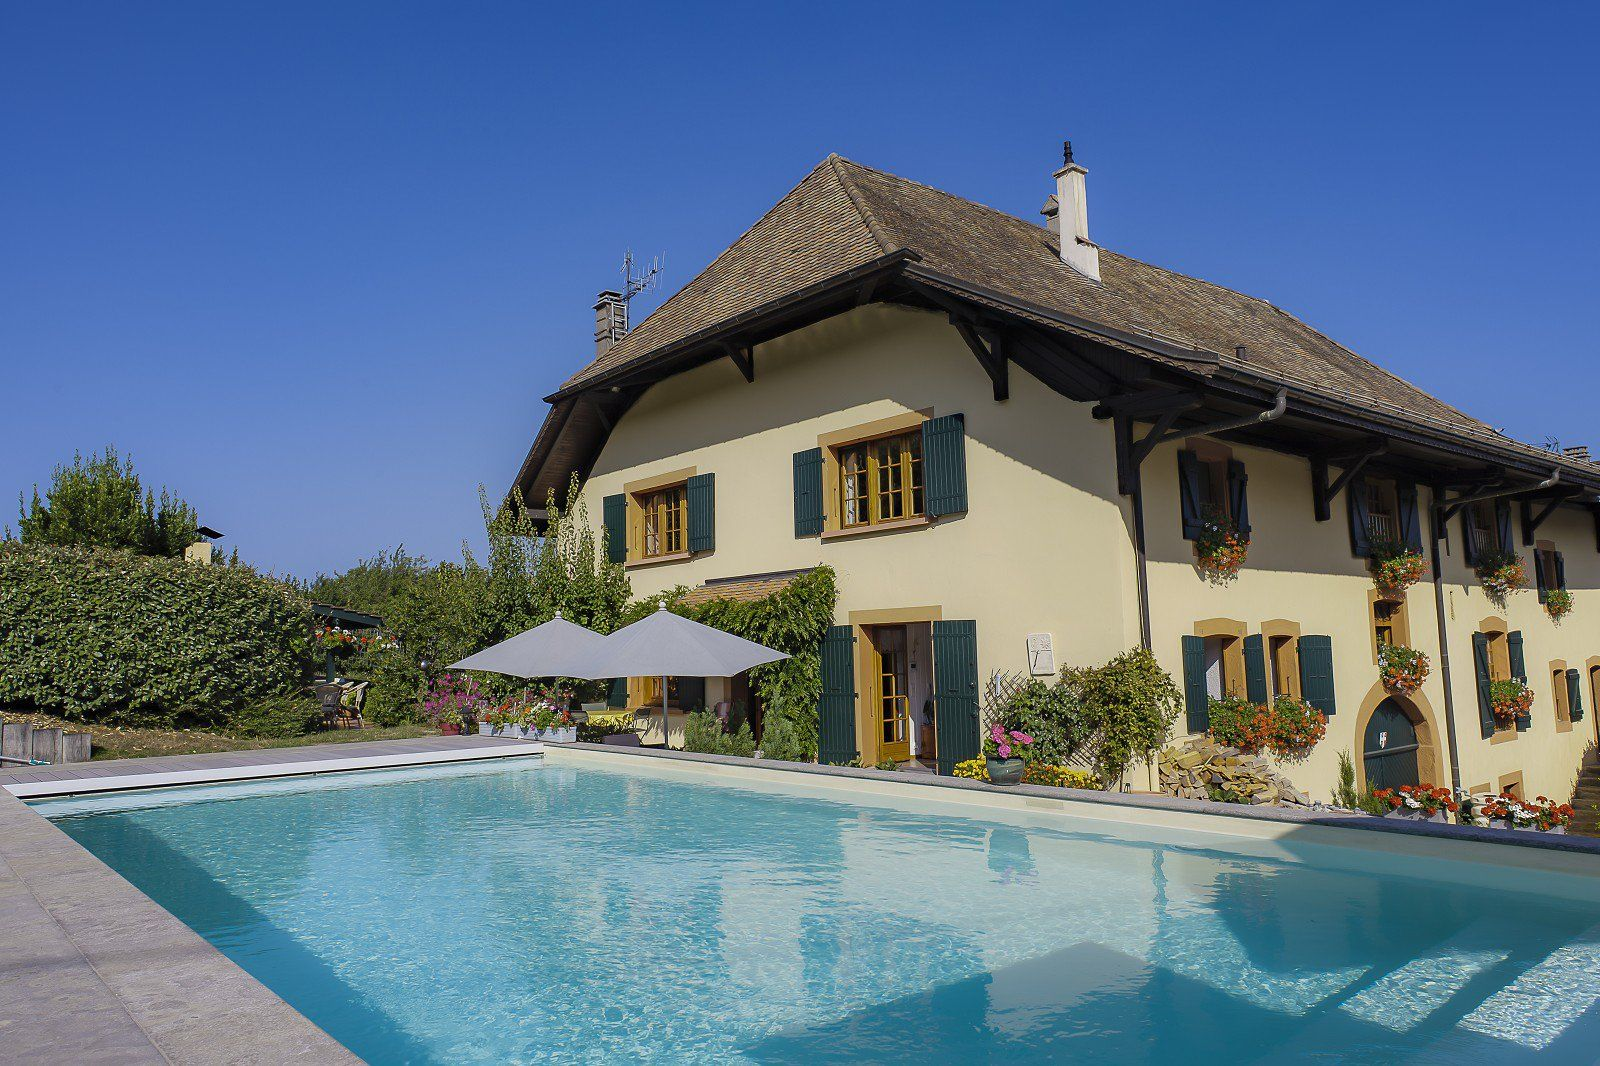 Maxilly - Old renovated farmhouse of 350 sq. m - Plot of 1843 sq. m - 6 Bedrooms - Swimming pool